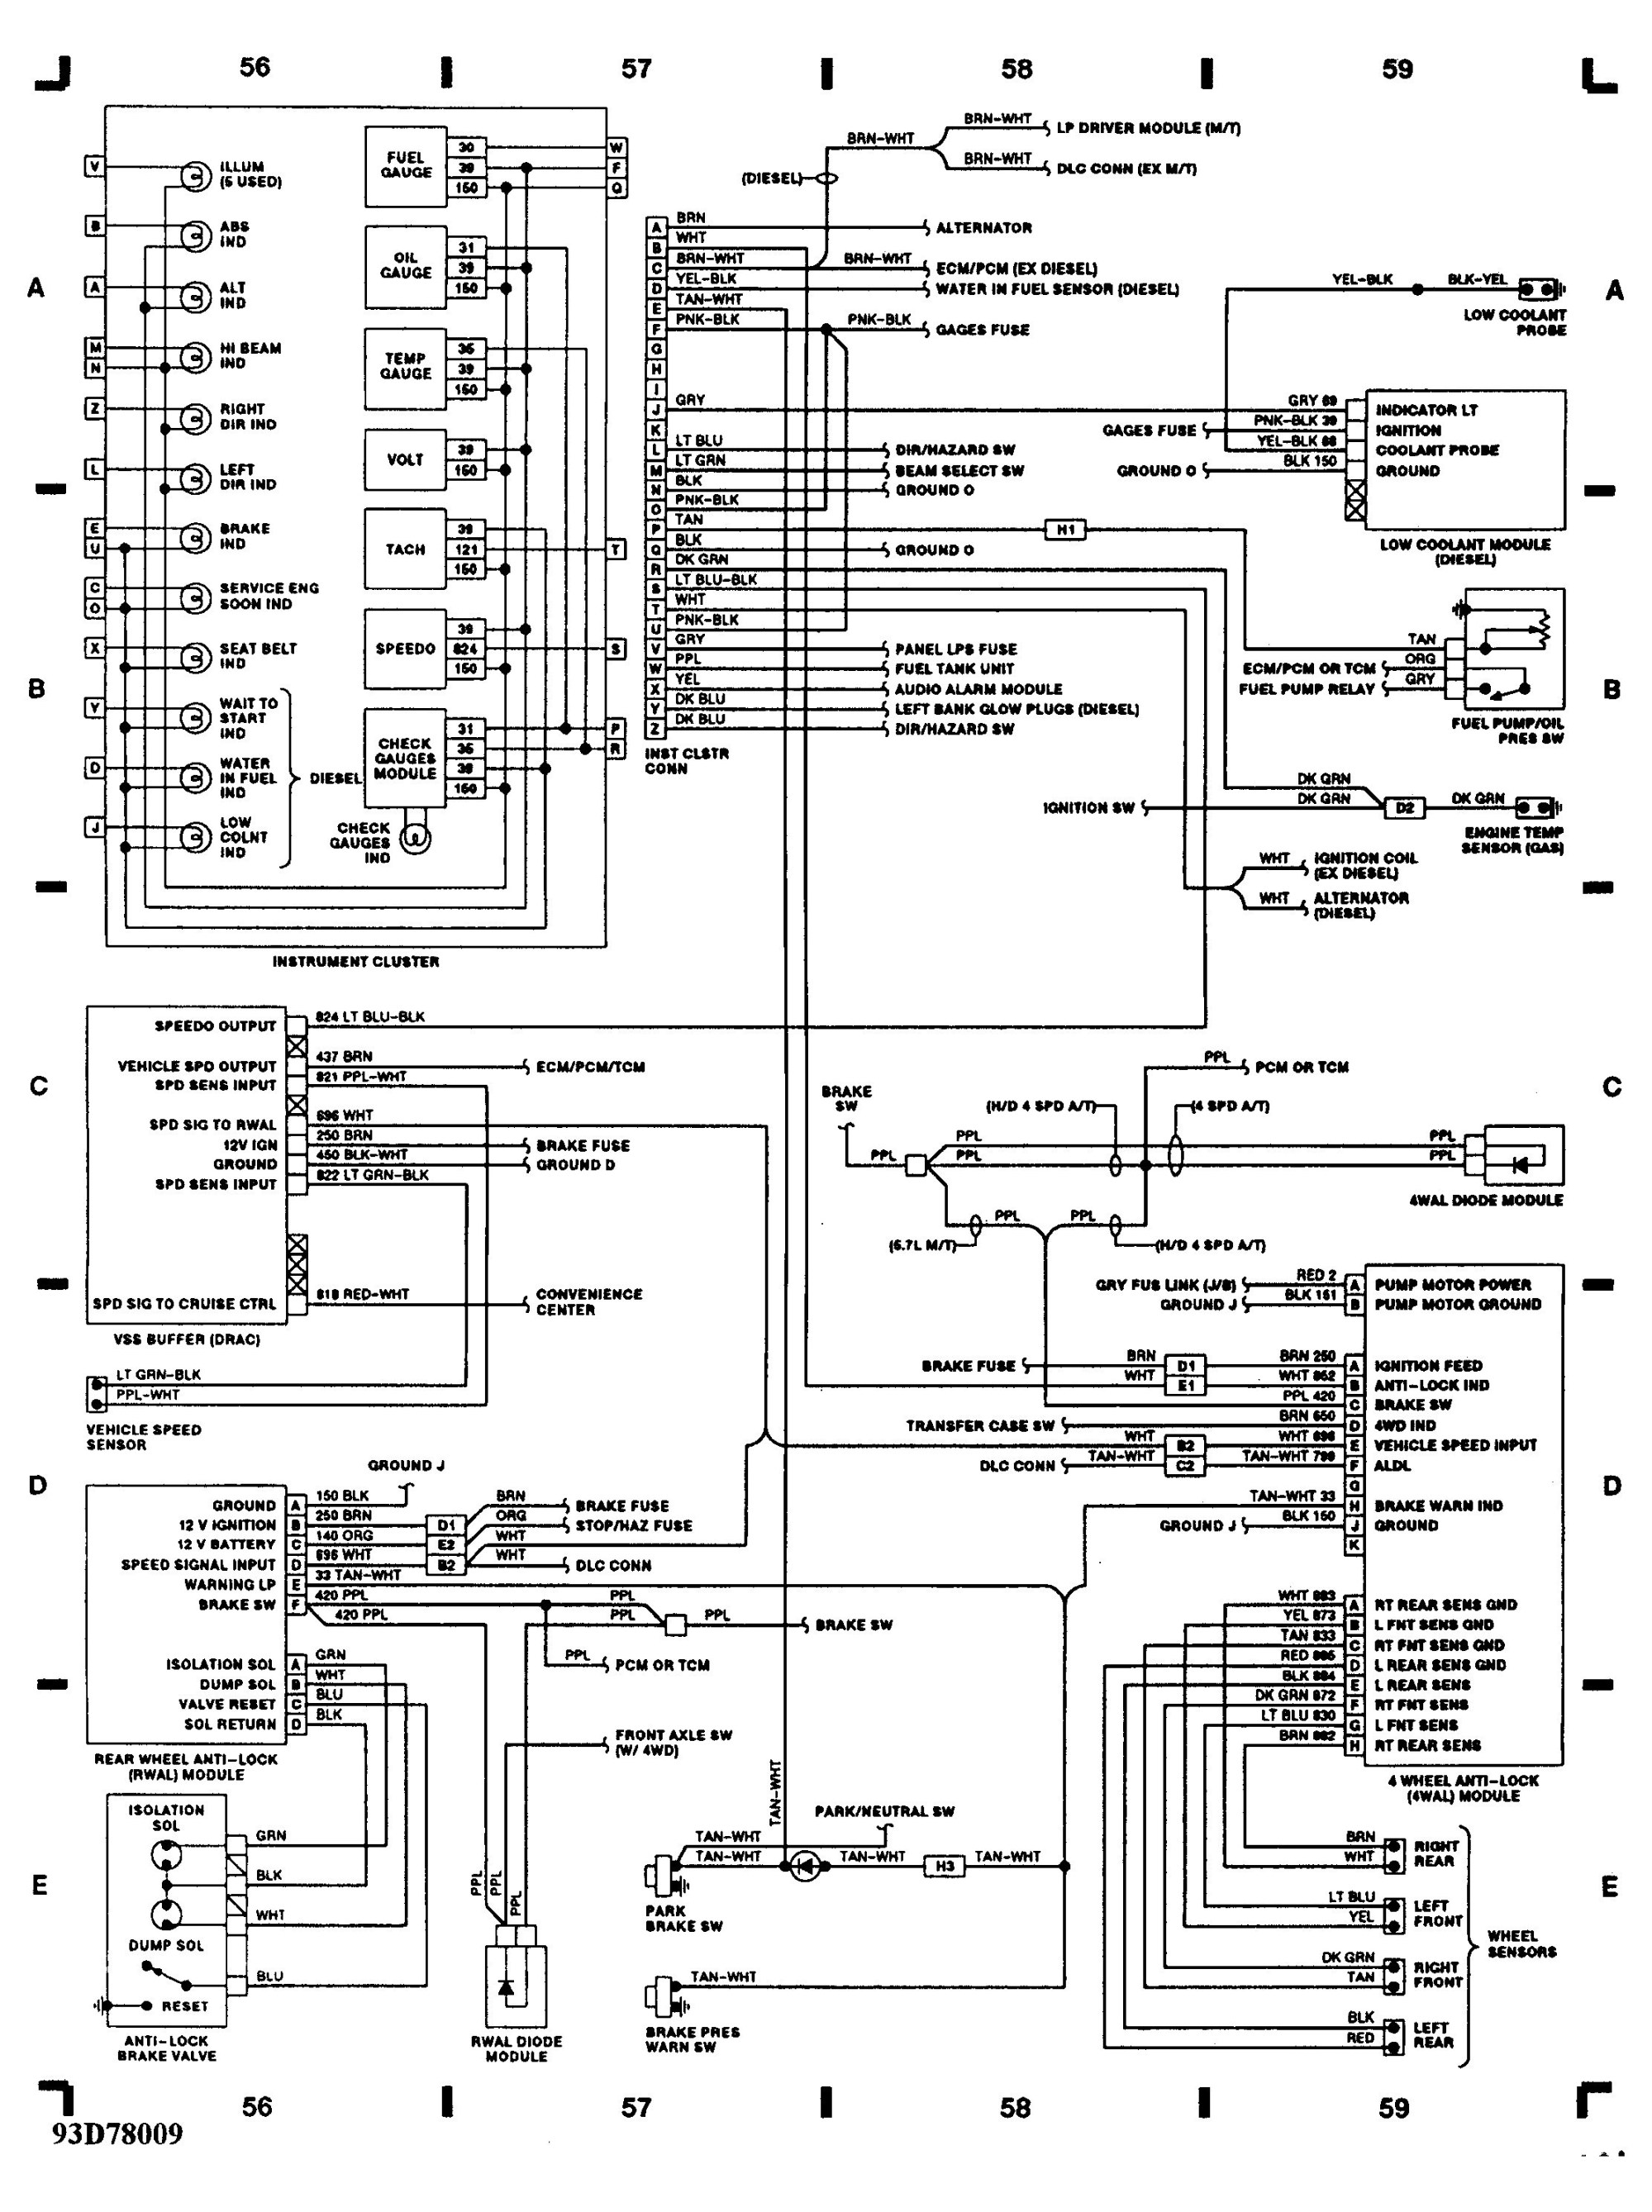 hight resolution of c1500 4 3l v6 wiring diagram wiring diagram part 1998 omc 4 3 v6 wiring diagram